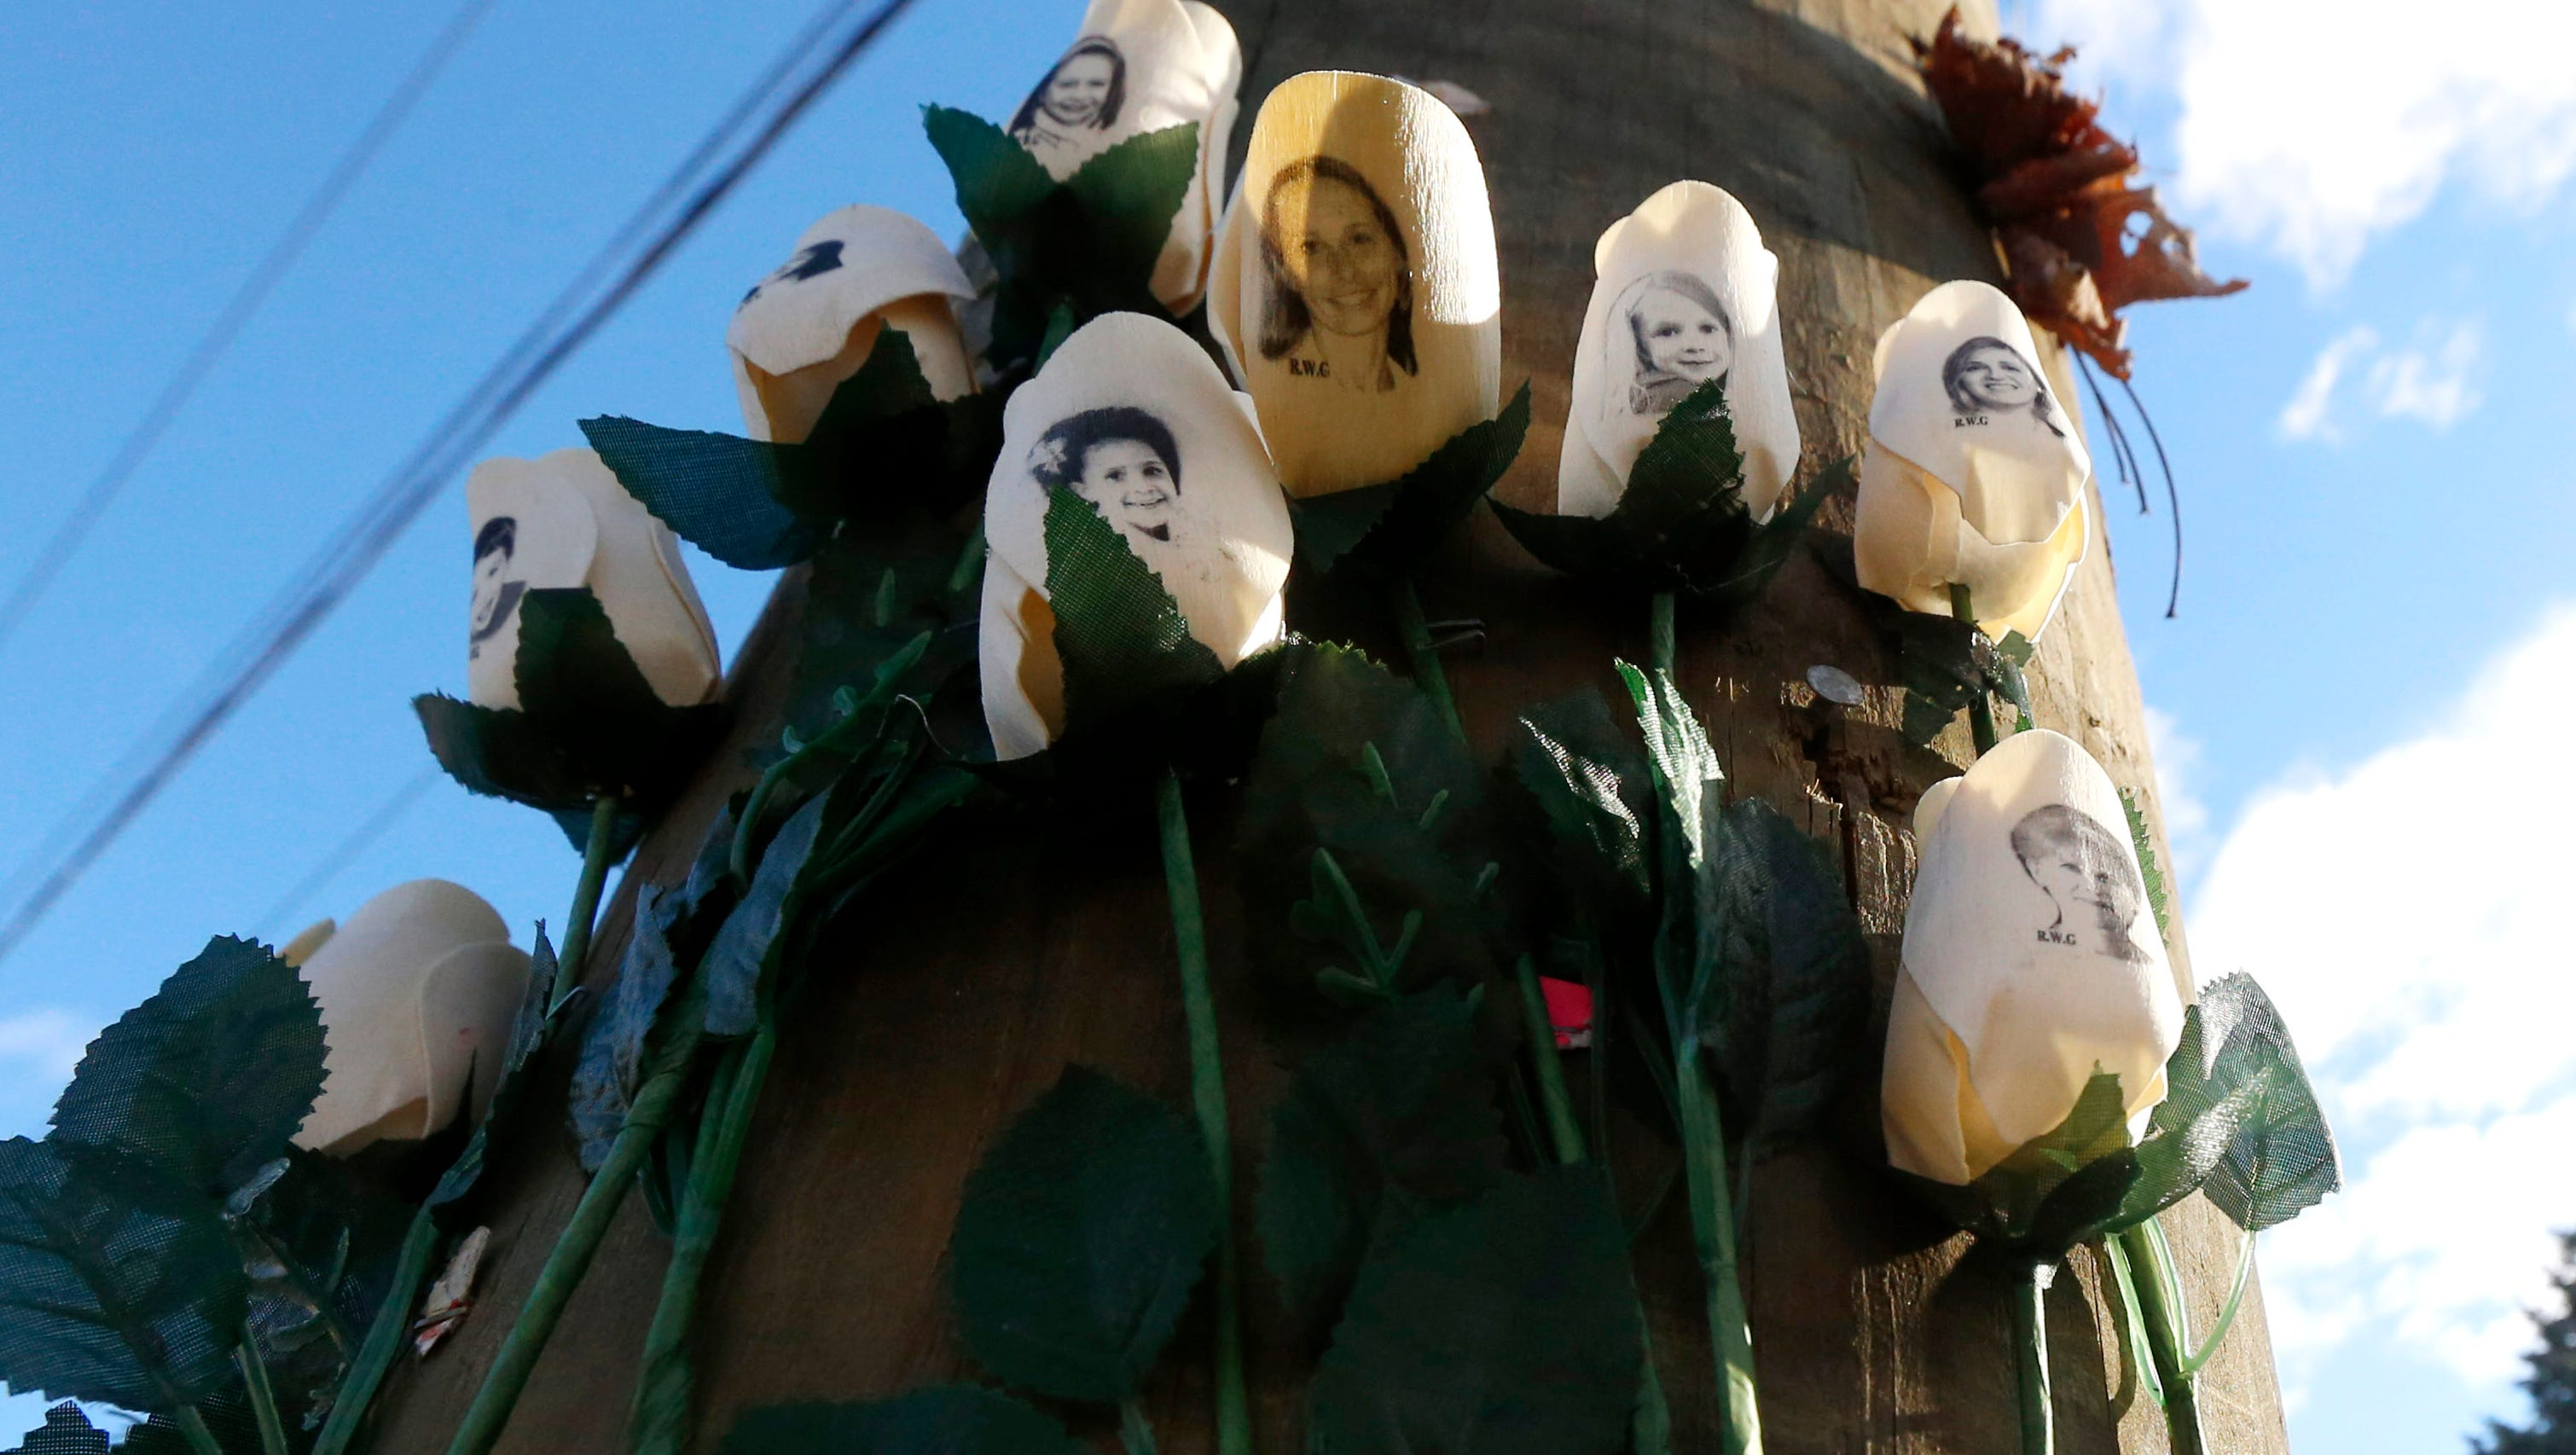 Roses with photos of shooting victims are posted on a light post at a makeshift memorial near the main intersection of the Sandy Hook village of Newtown, Conn., as the town continues to cope in the aftermath of the Sandy Hook Elementary School shooting, Wednesday, Dec. 19, 2012.